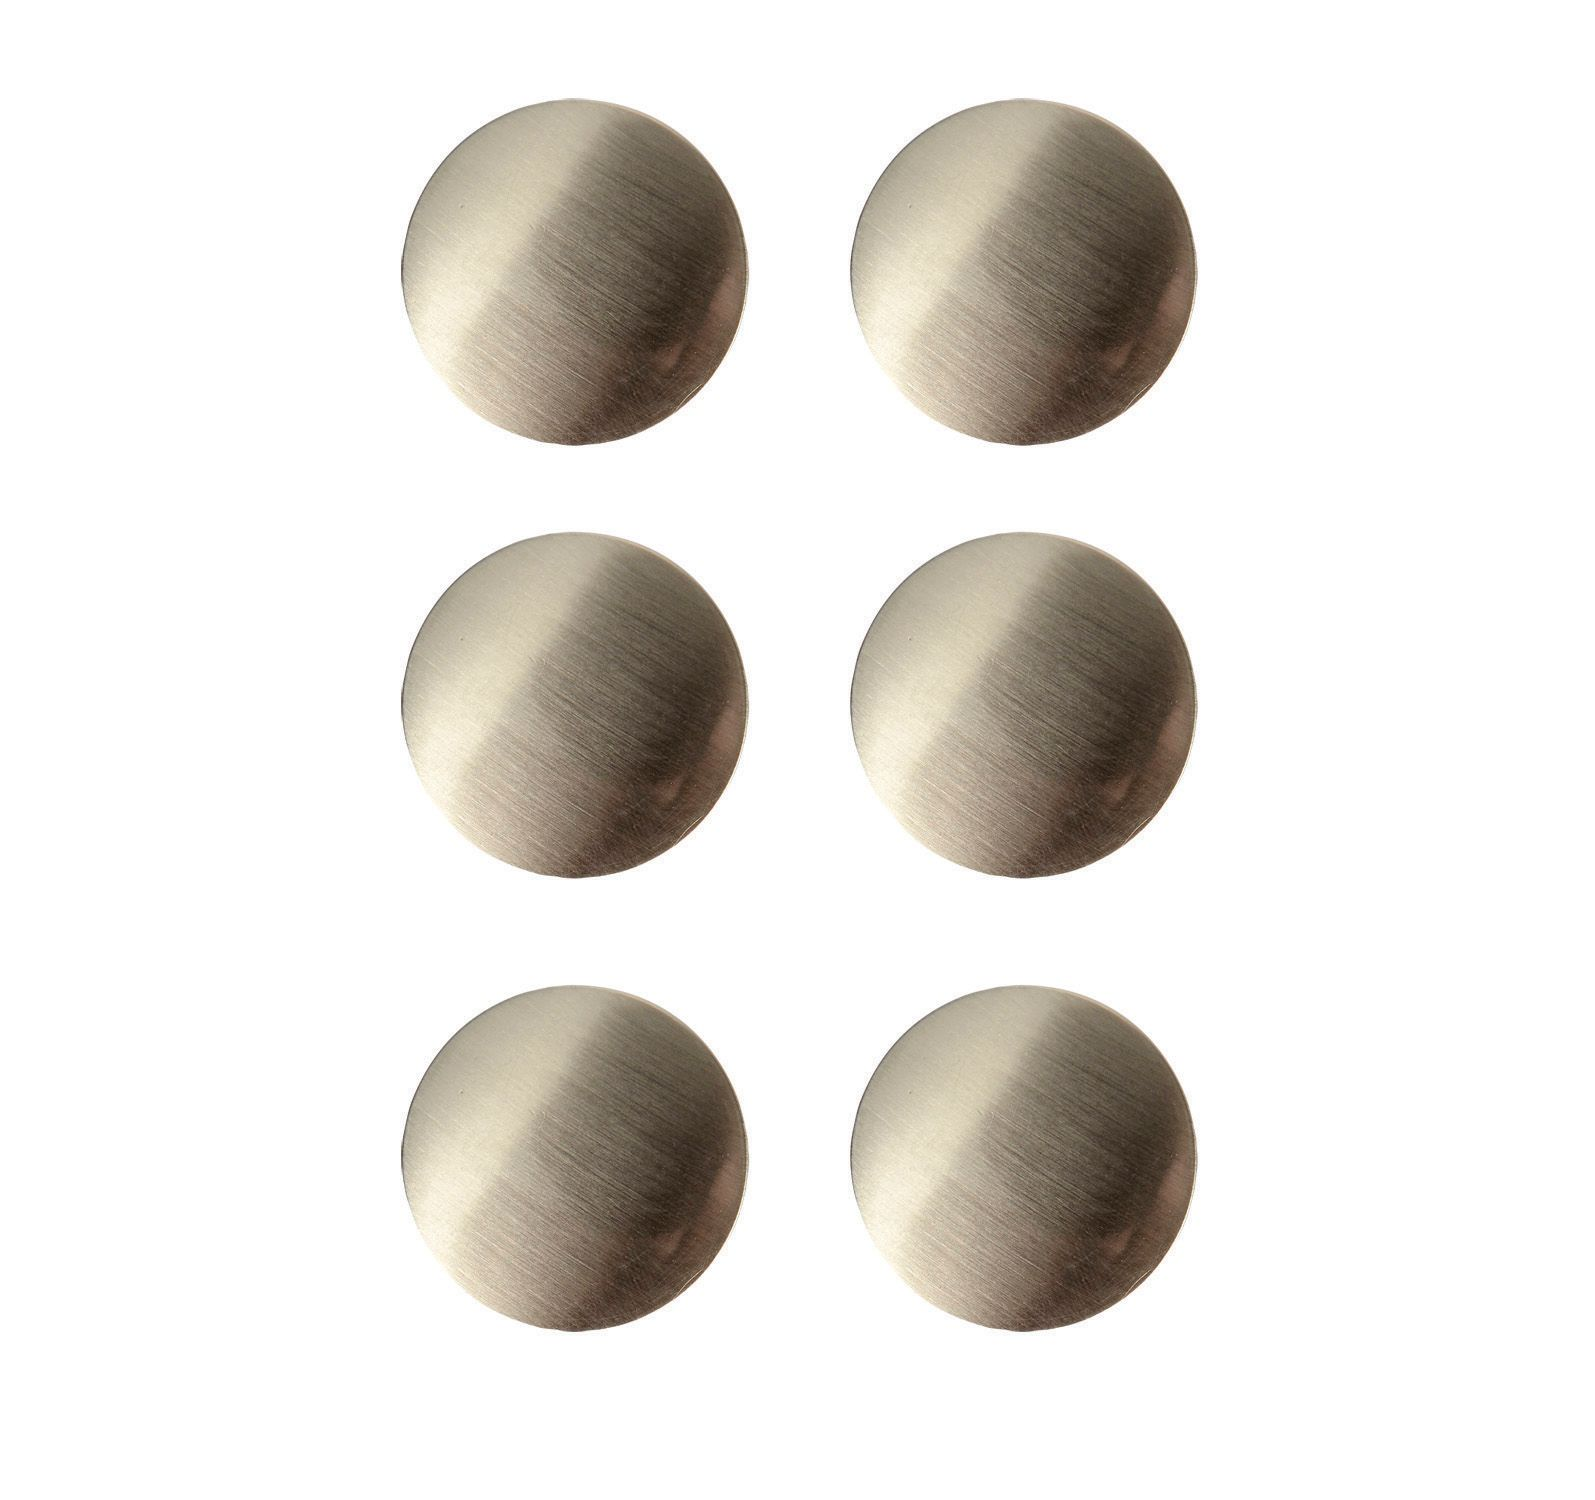 Wickes Victorian Knobs Brushed Nickel Finish 38mm 6 Pack Wickes Co Uk - Garden Furniture Clearance Near Me